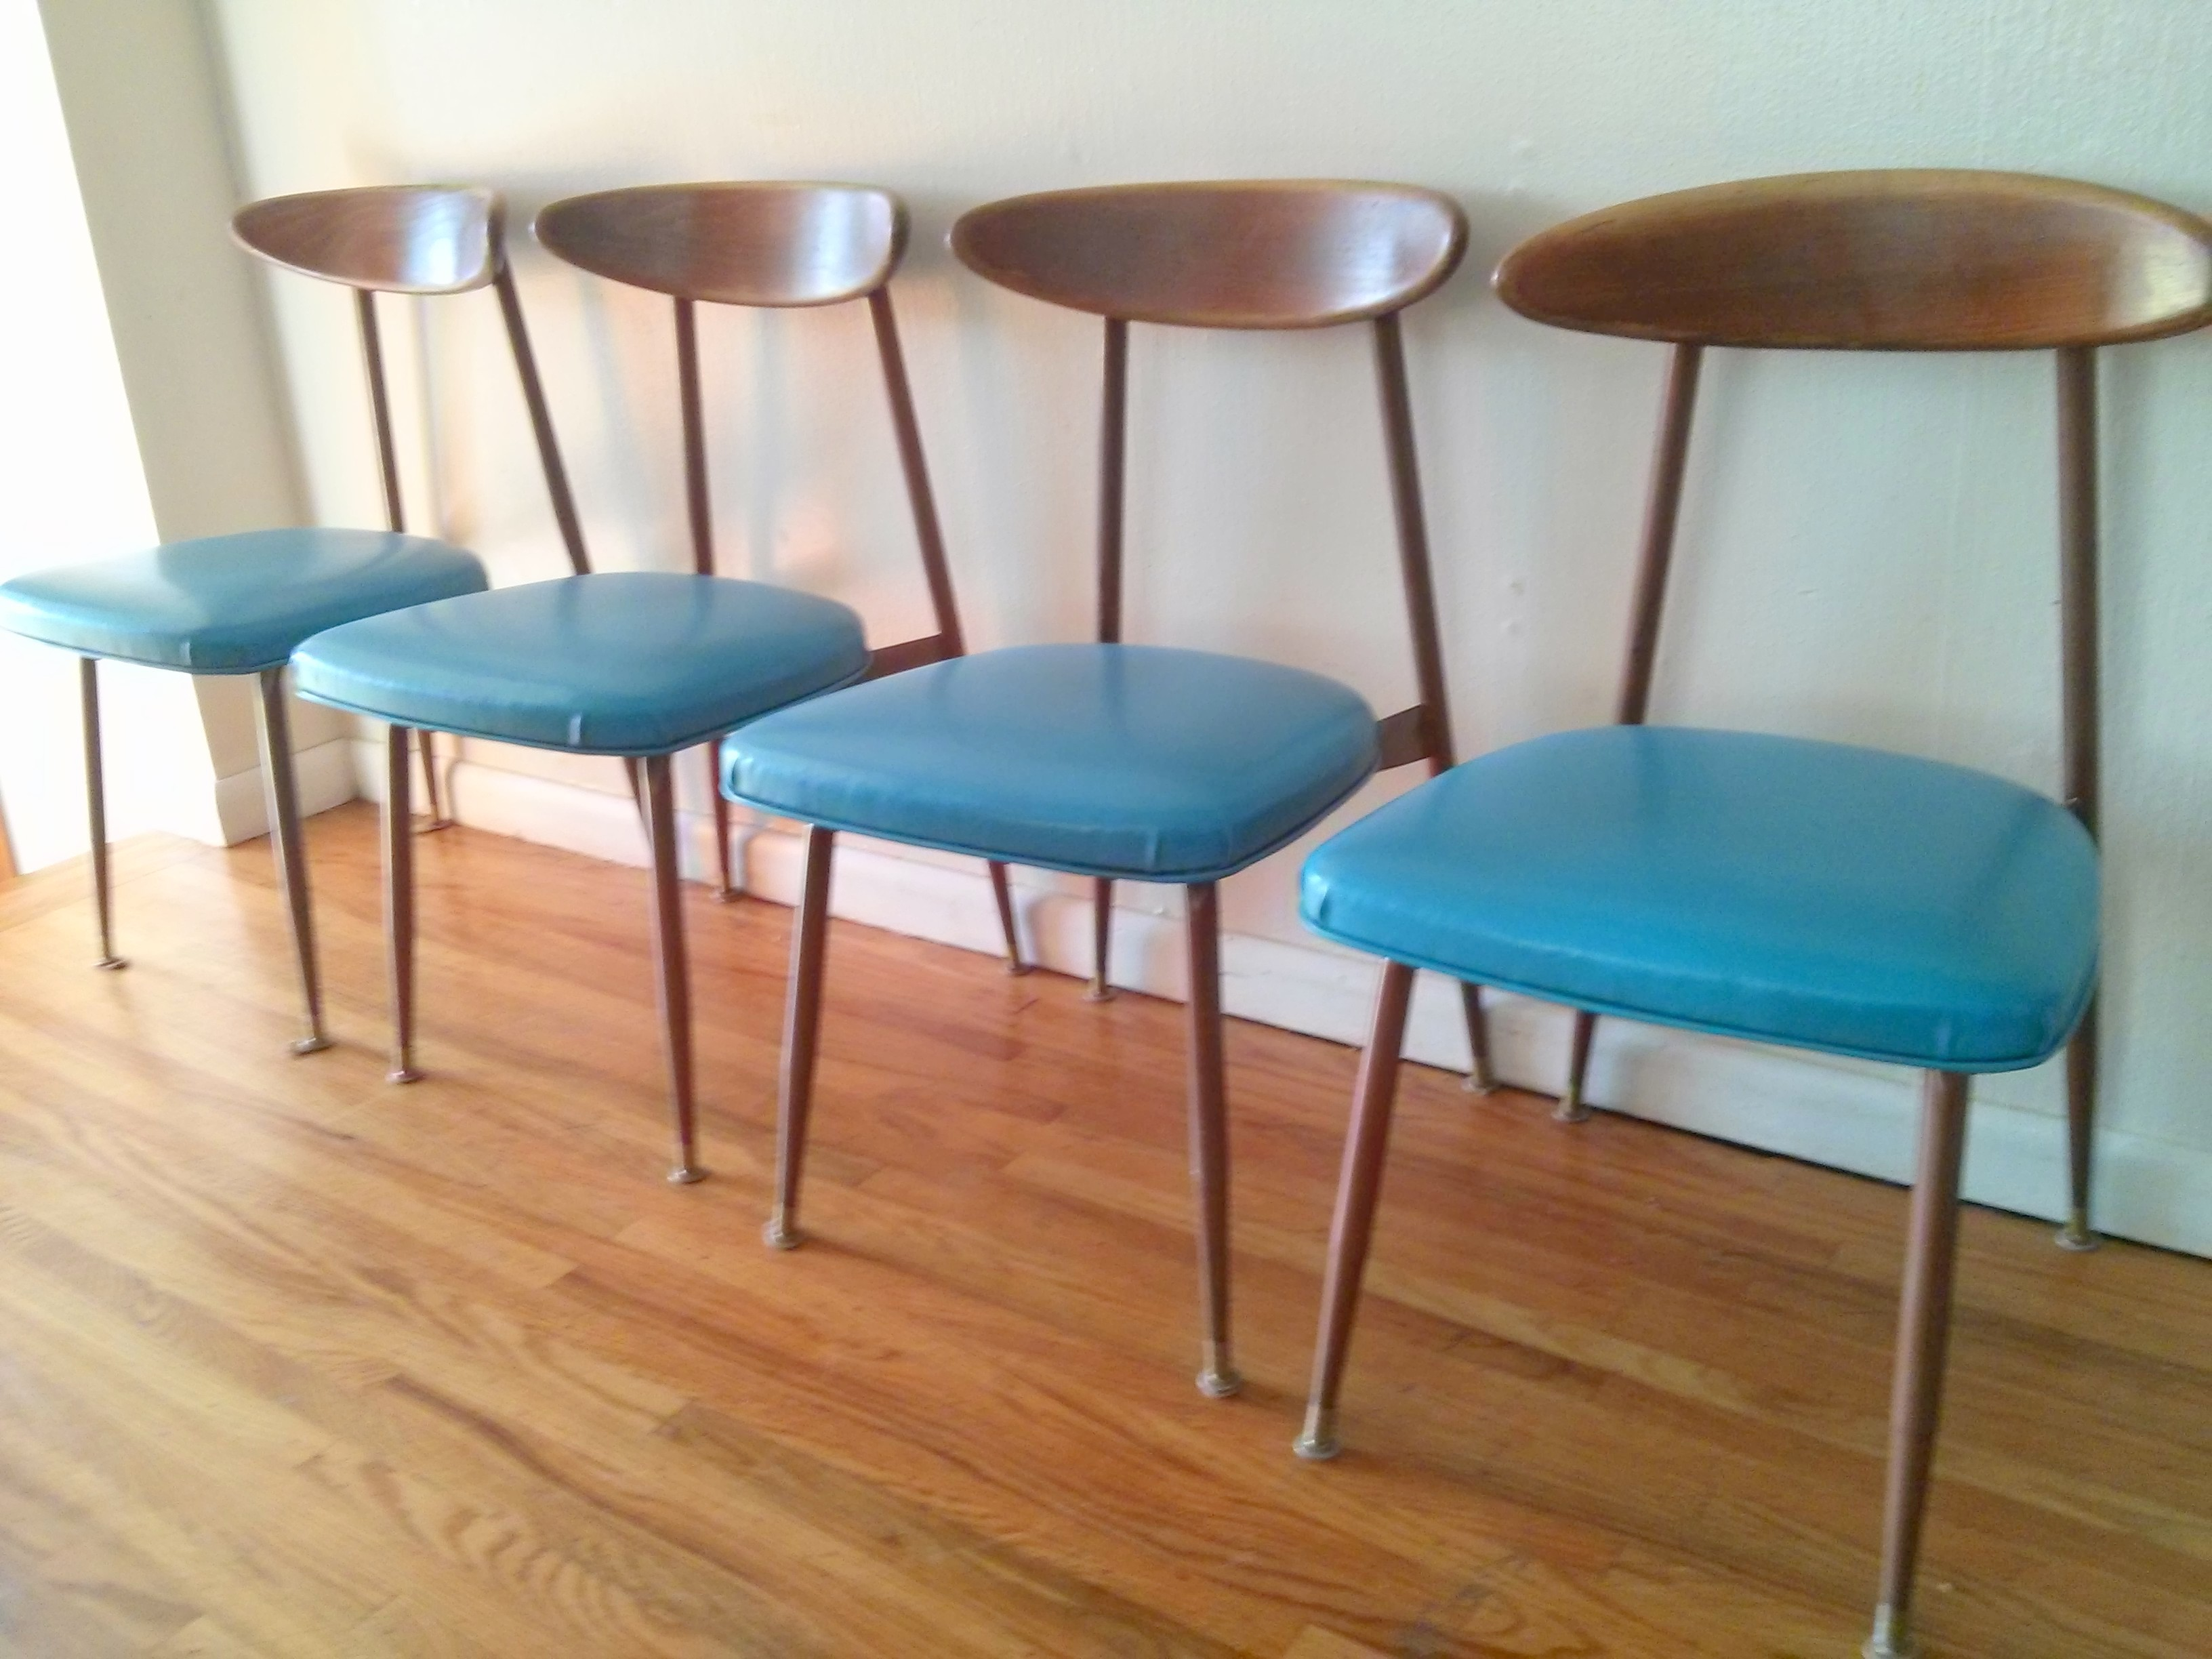 viko chairs set of 4 Viko chair and table ... & Mid Century Modern Viko Chairs u0026 Dining Table | Picked Vintage